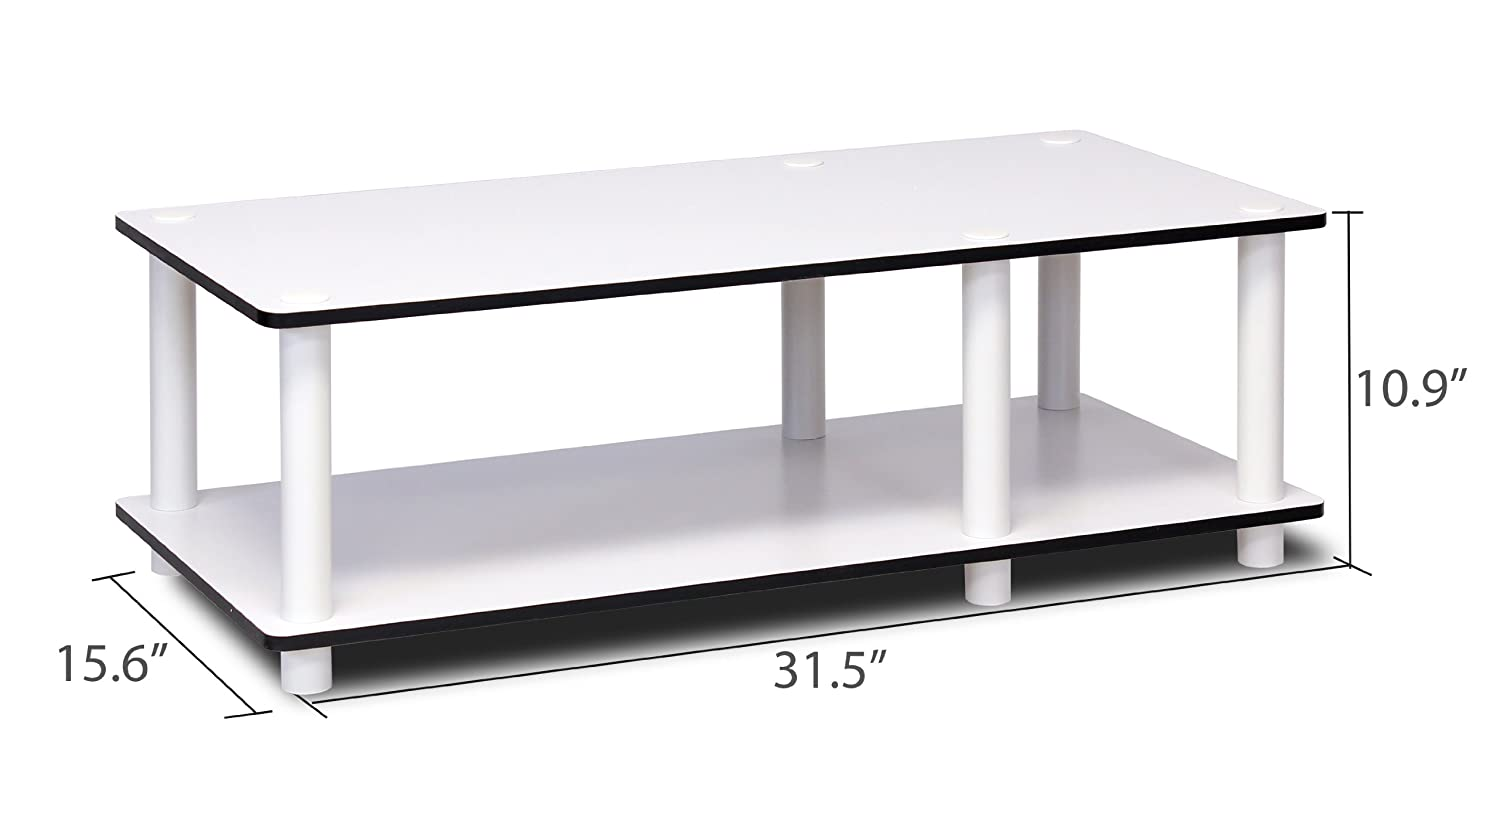 Furinno 11174DC BK //BK Just No Tools Dark Cherry Mid Television Stand with Black Tube